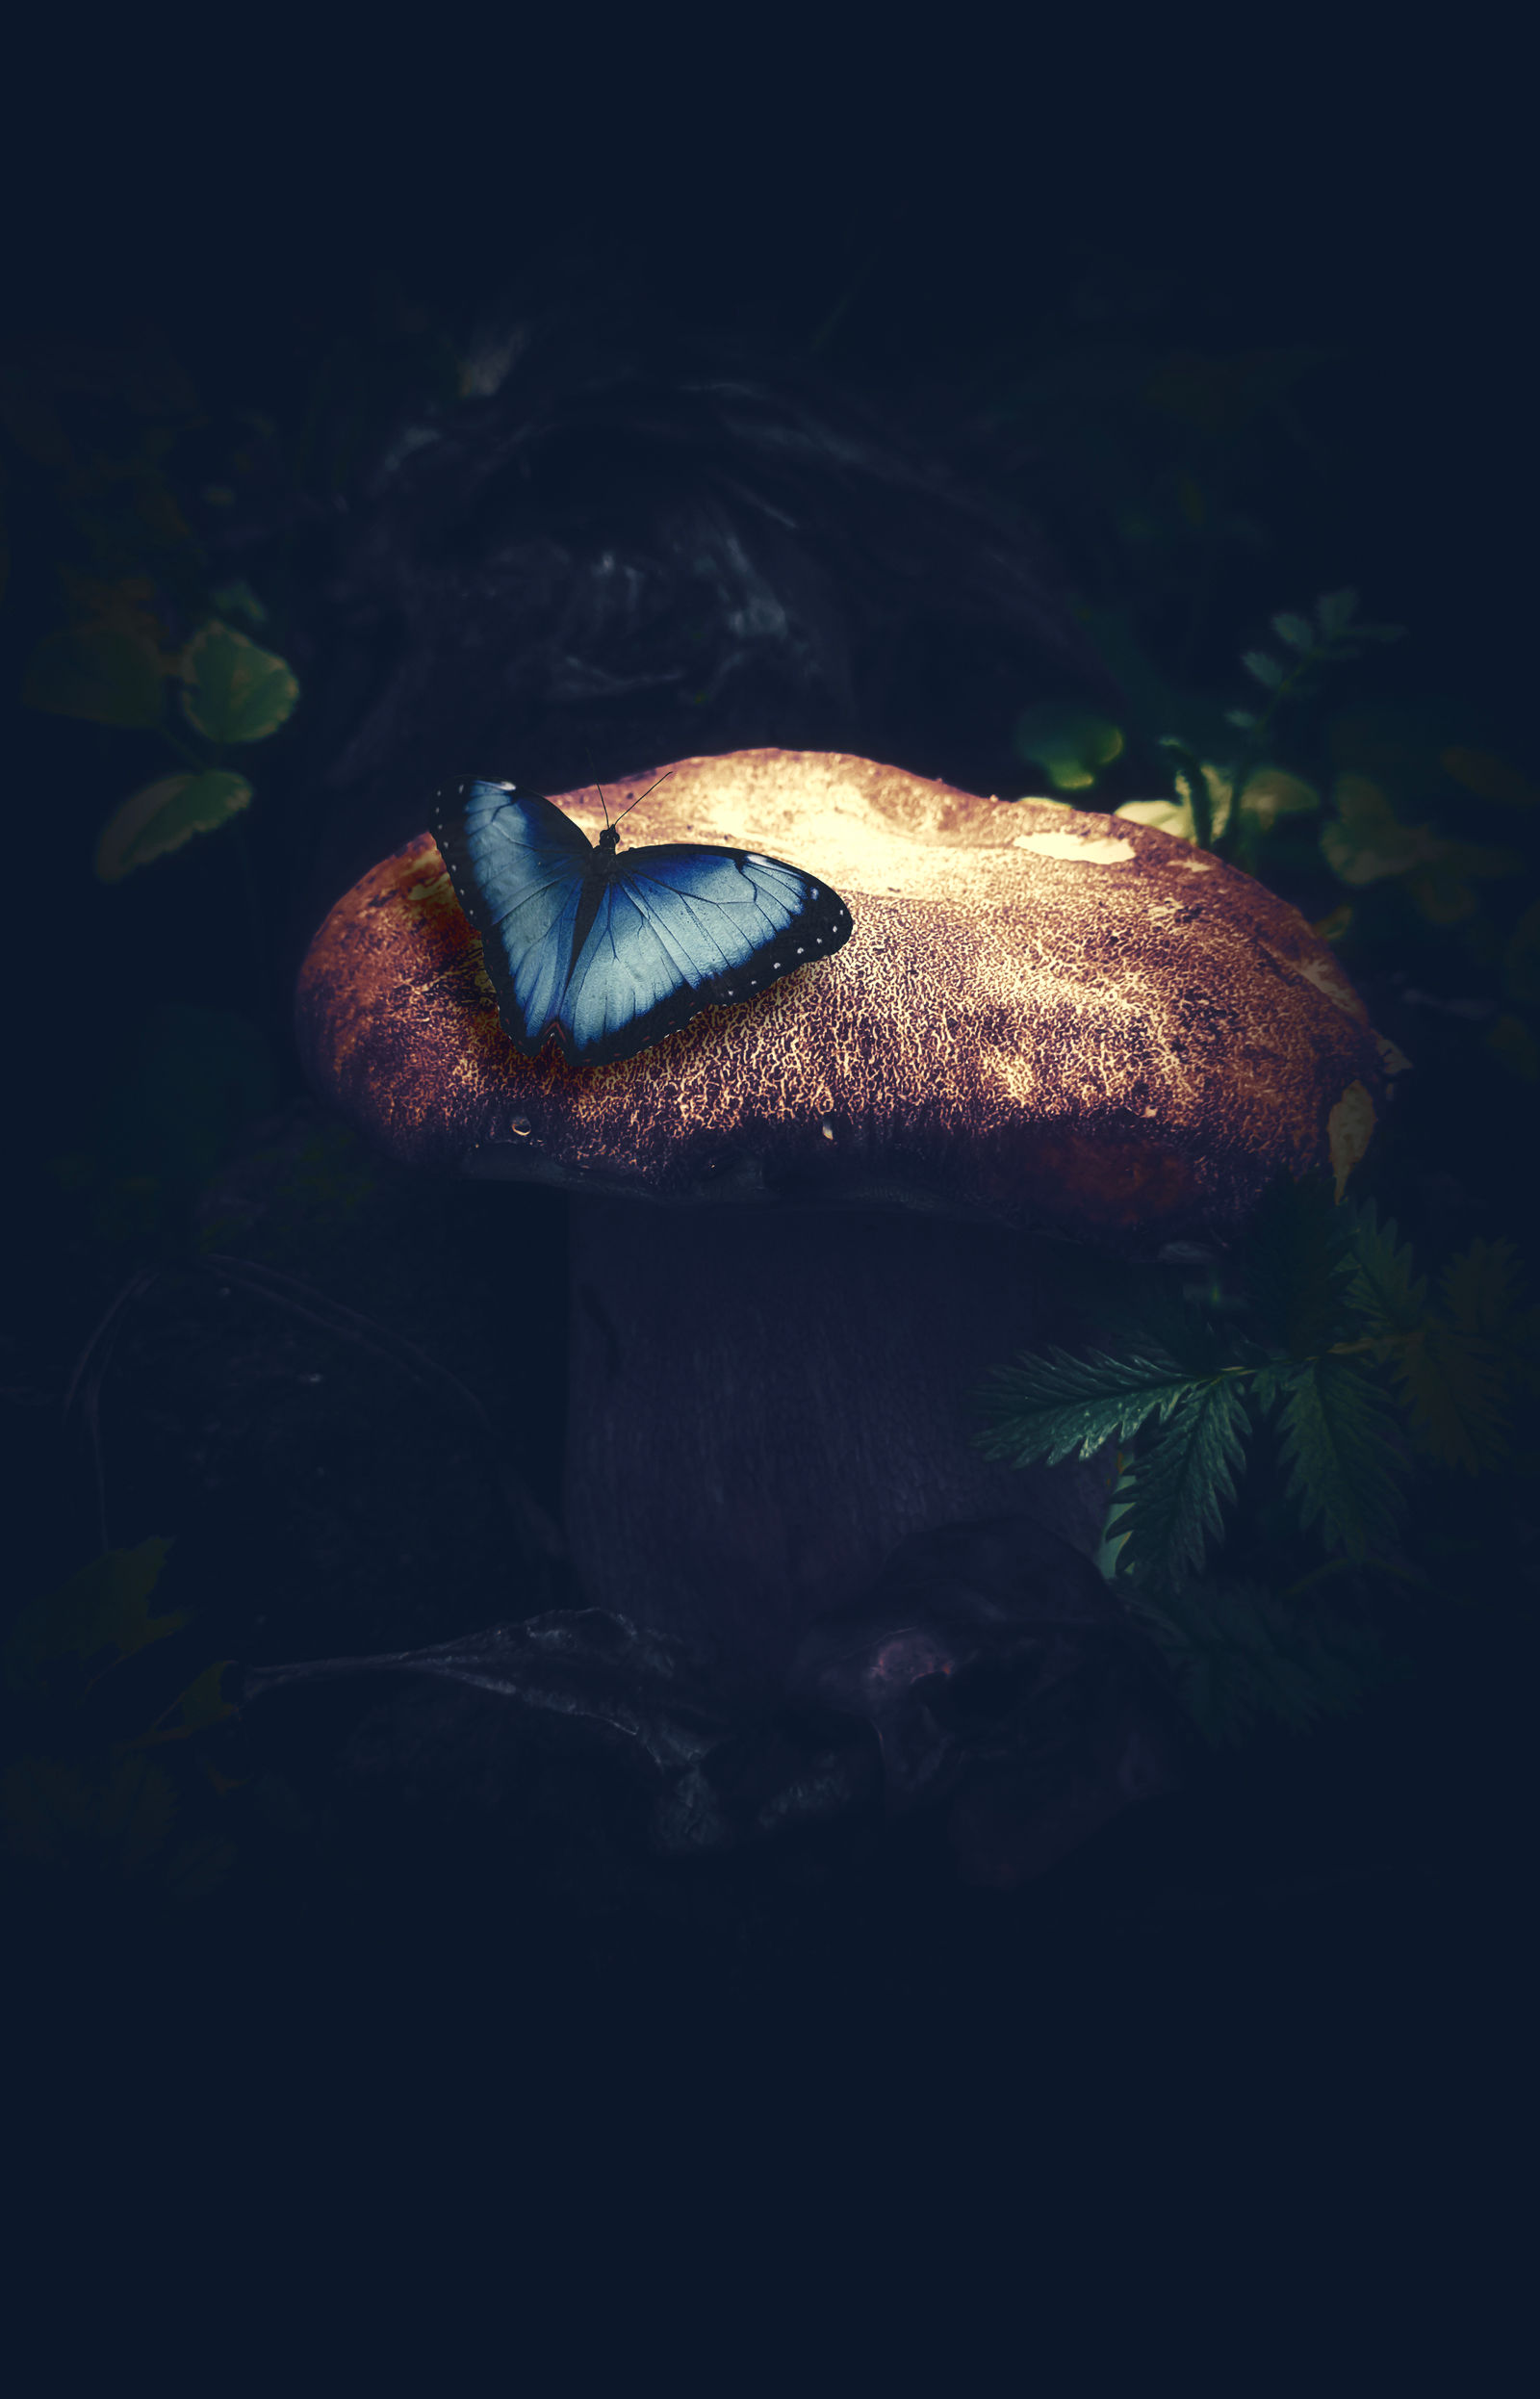 Butterfly and Mushroom